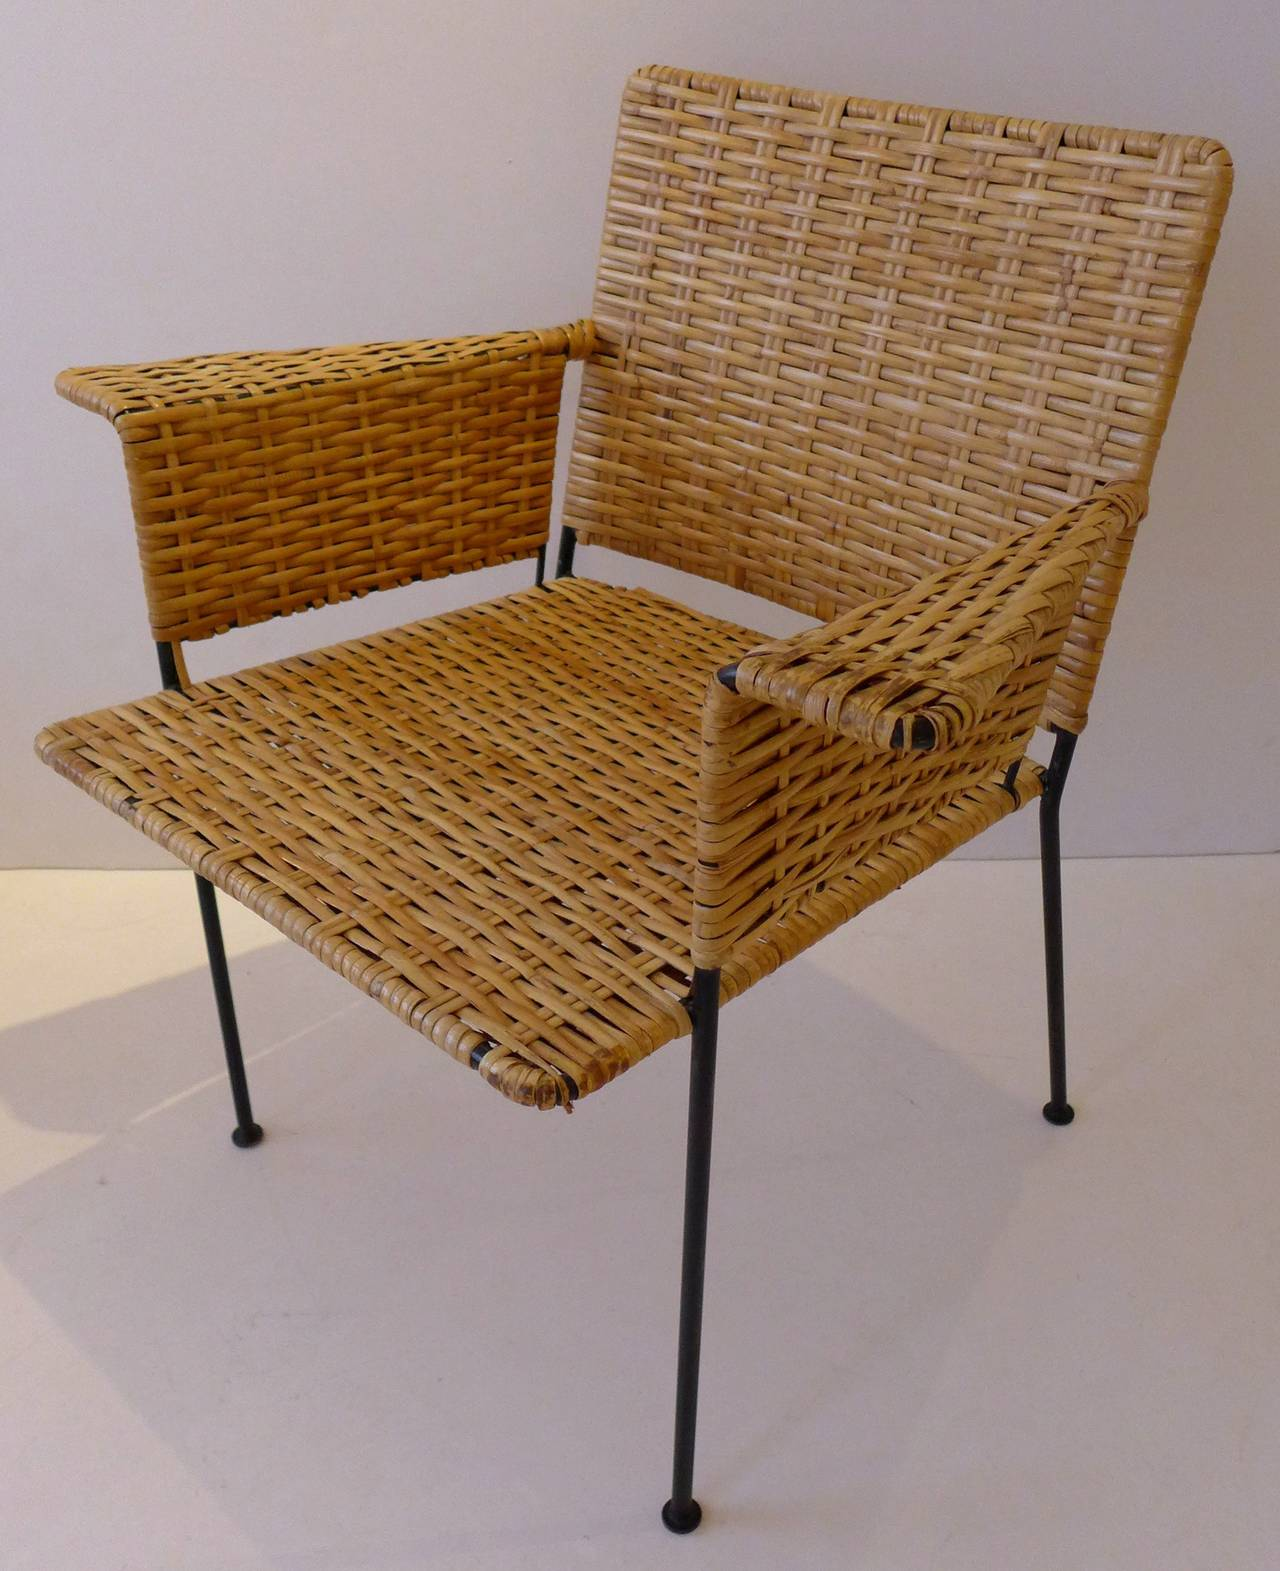 wrought iron chair rustic dining table and chairs van keppel green in rattan at 1stdibs